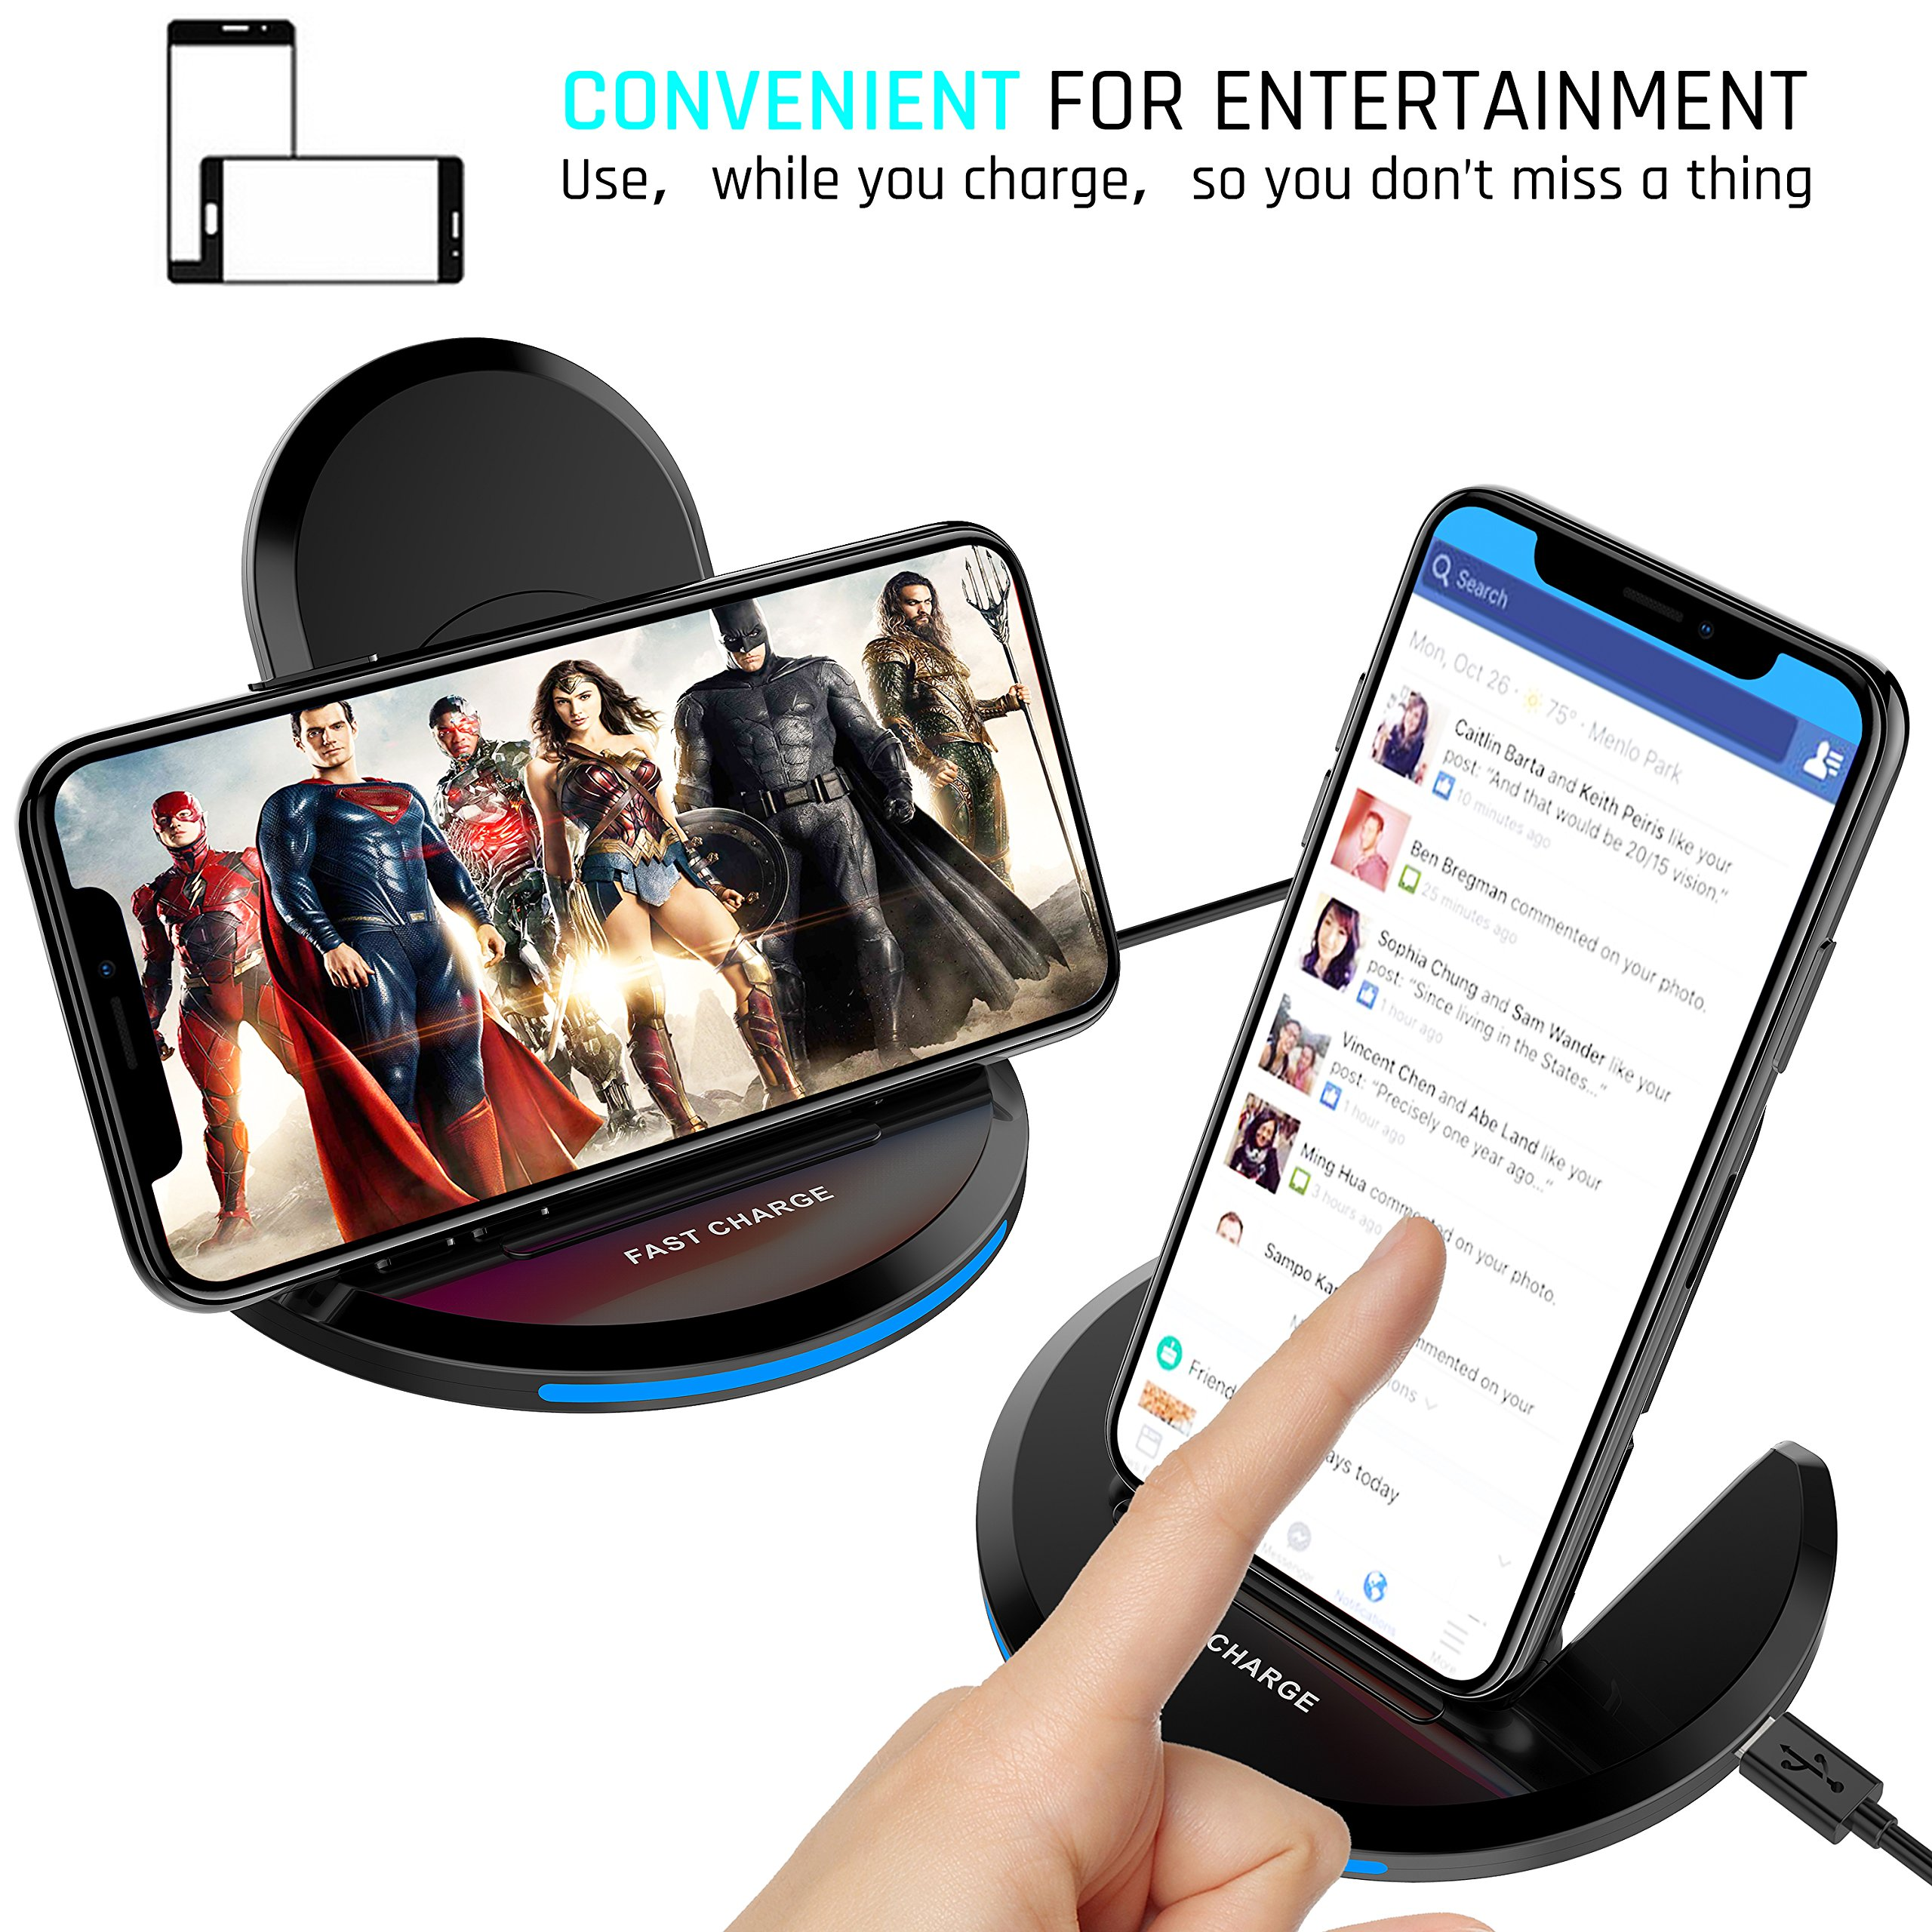 Fast Wireless Charger, QI Wireless Charging Pad Stand with LED Light, Overheat Protection